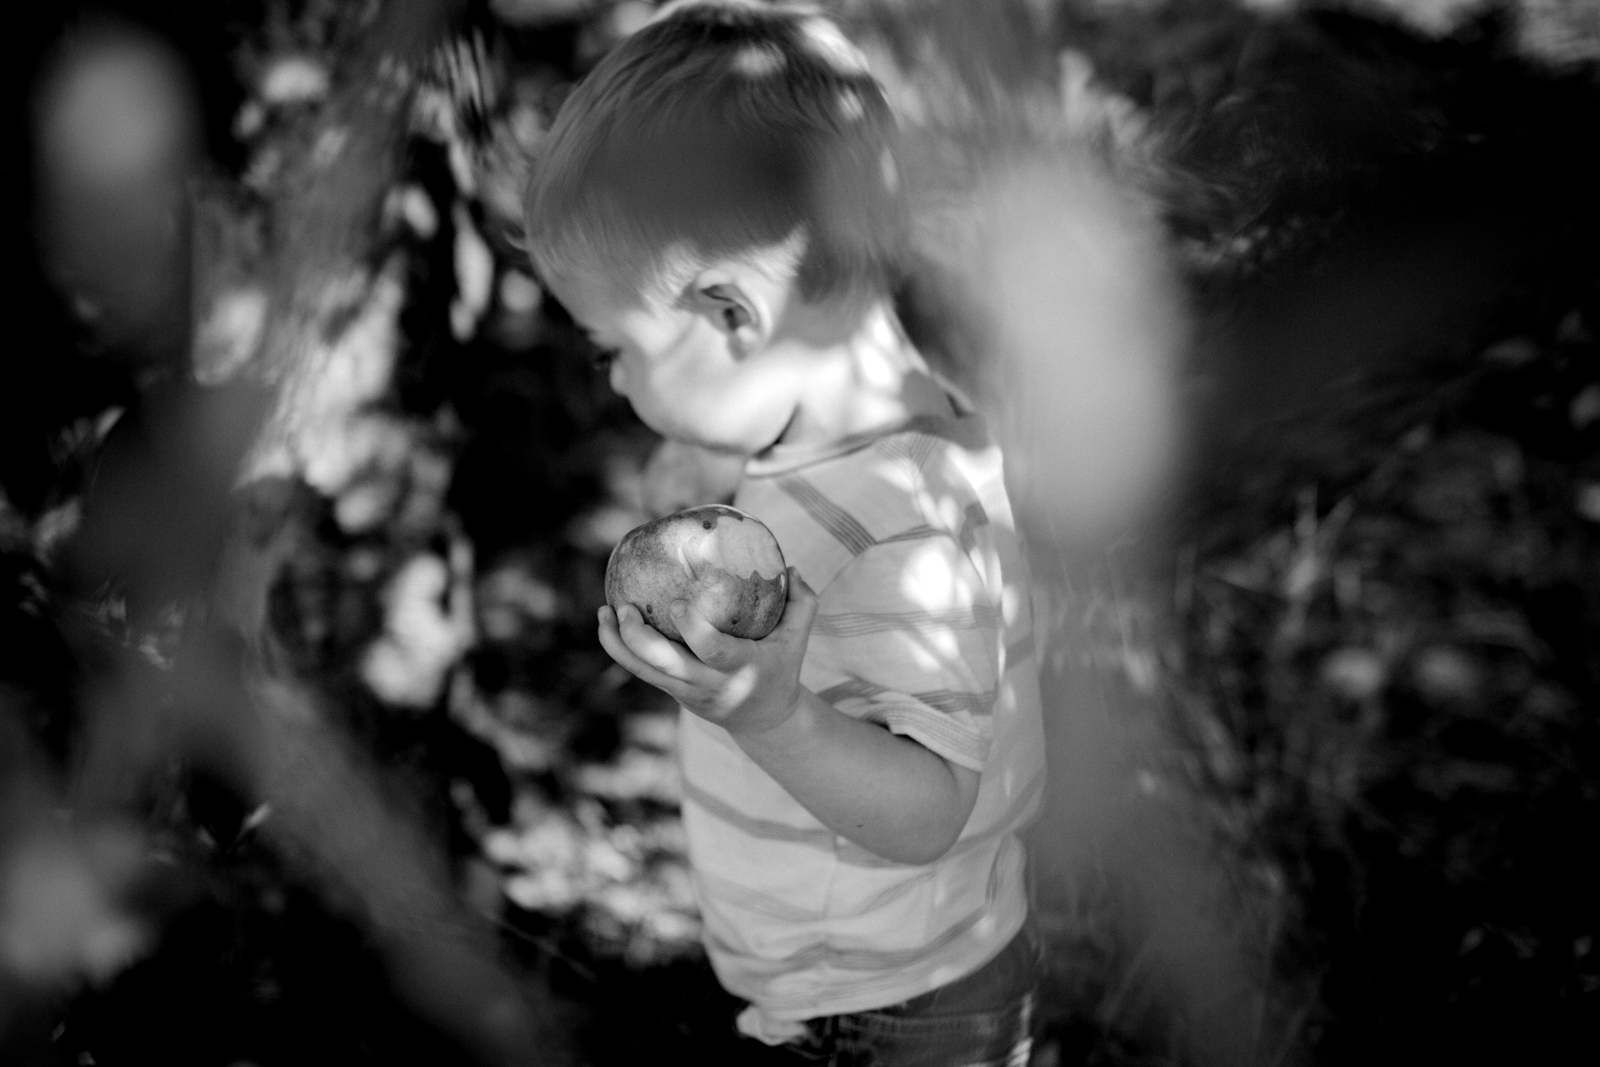 Rebecca Clair Photography, Kansas City lifestyle photographer, apple picking photo session, apple orchard photos, Kansas City family photographer, boy holding apples, black and white photo